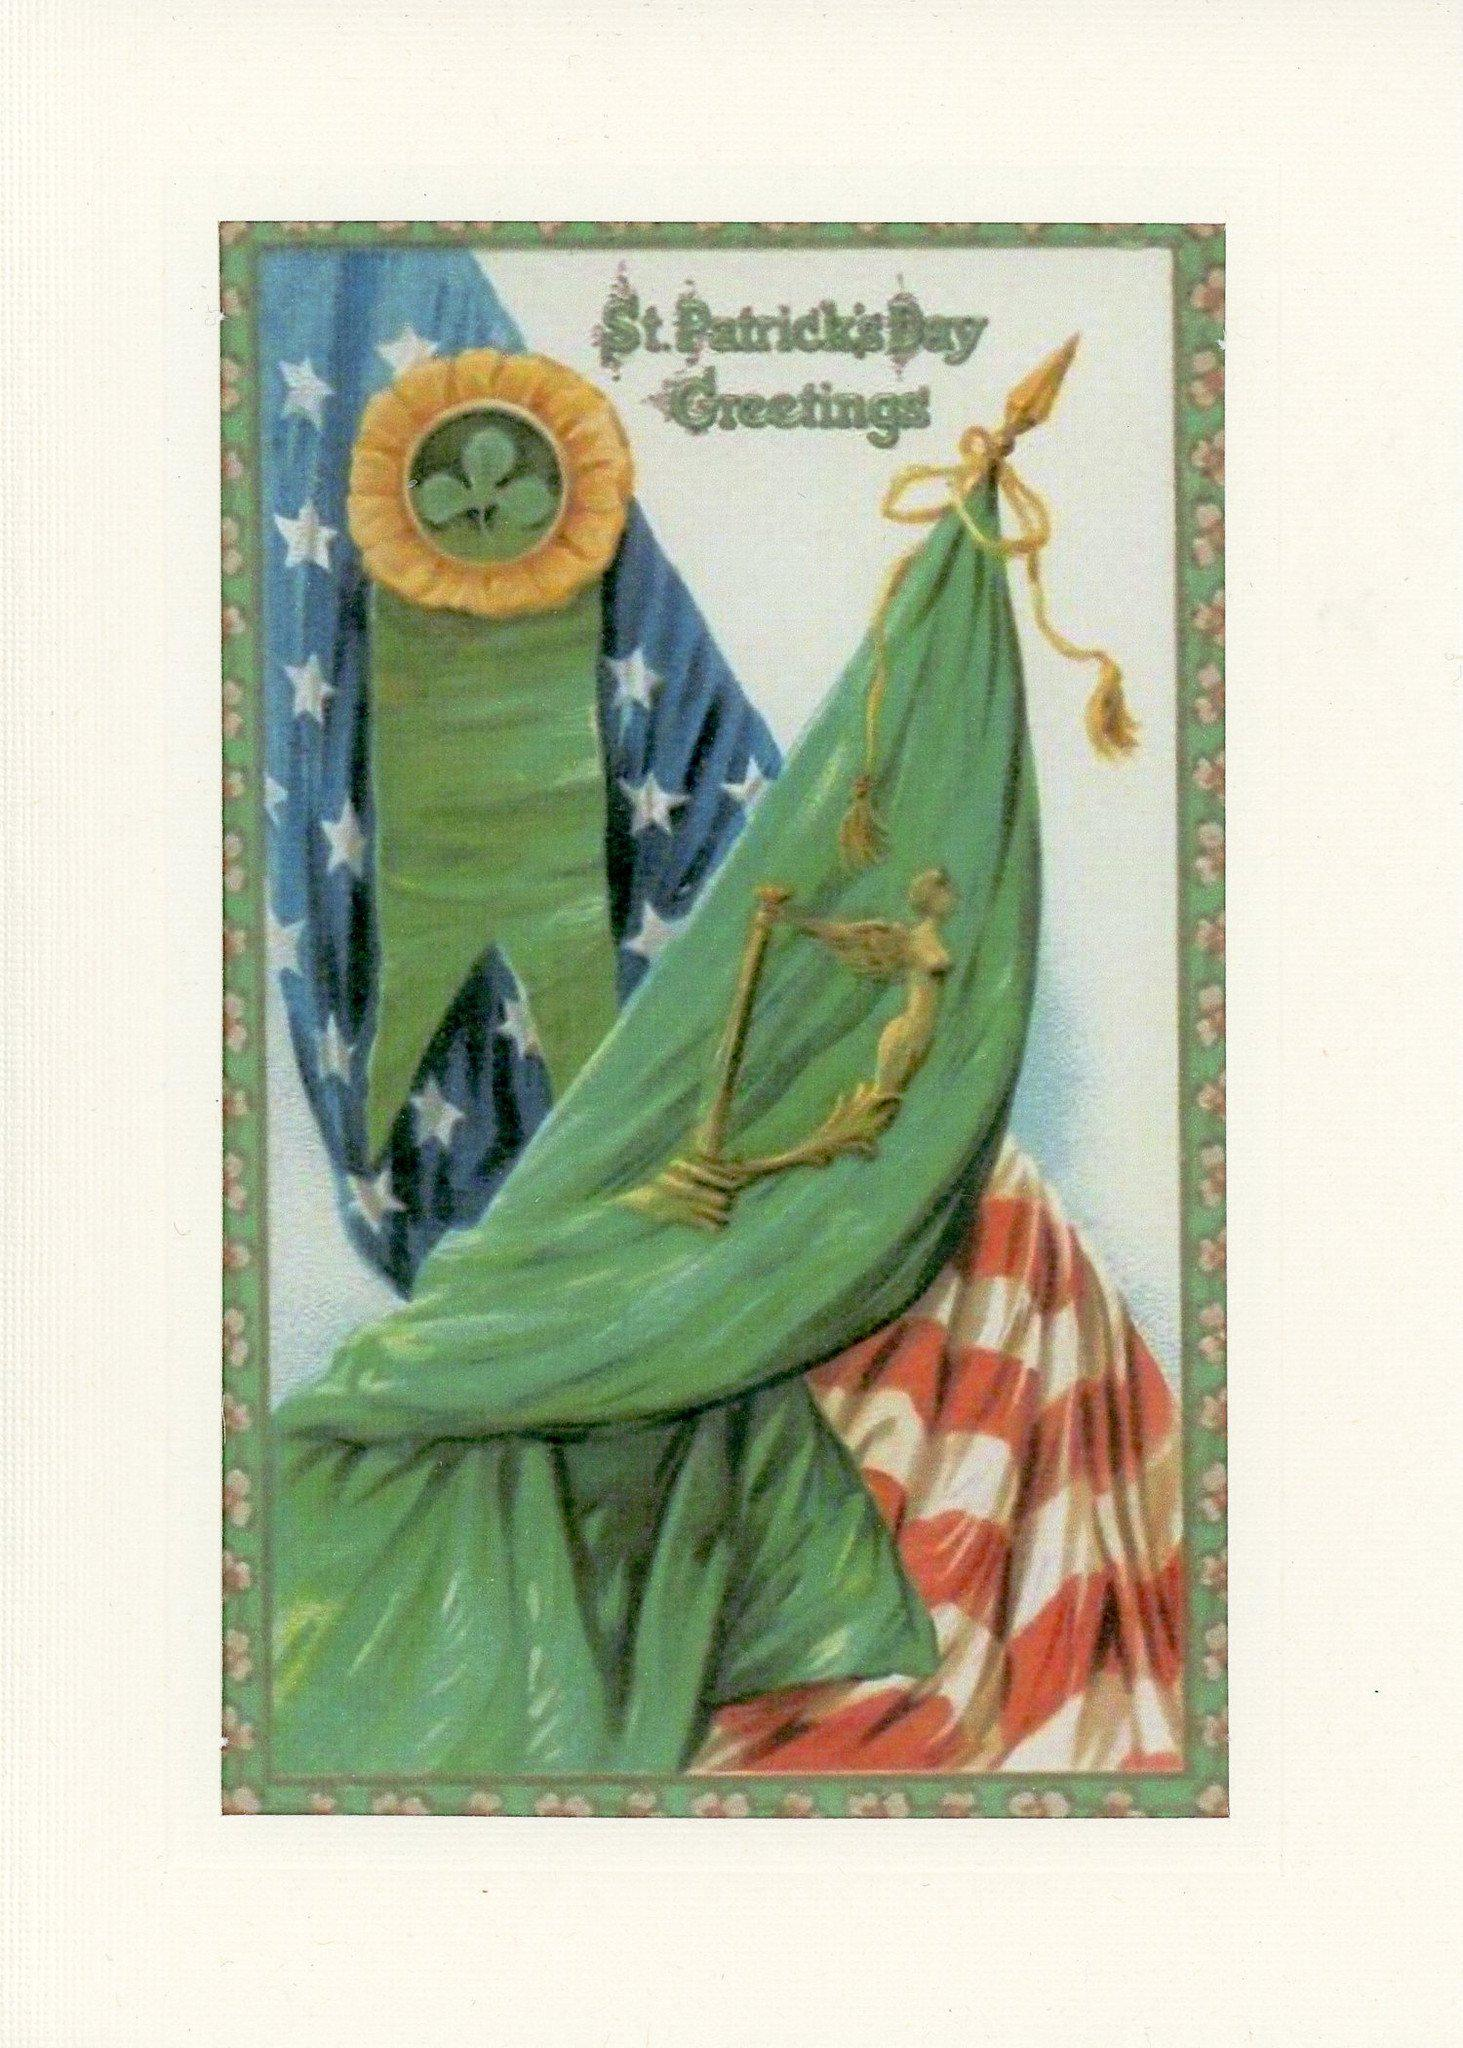 Patriotic St. Patrick's Day-Greetings from the Past-Plymouth Cards